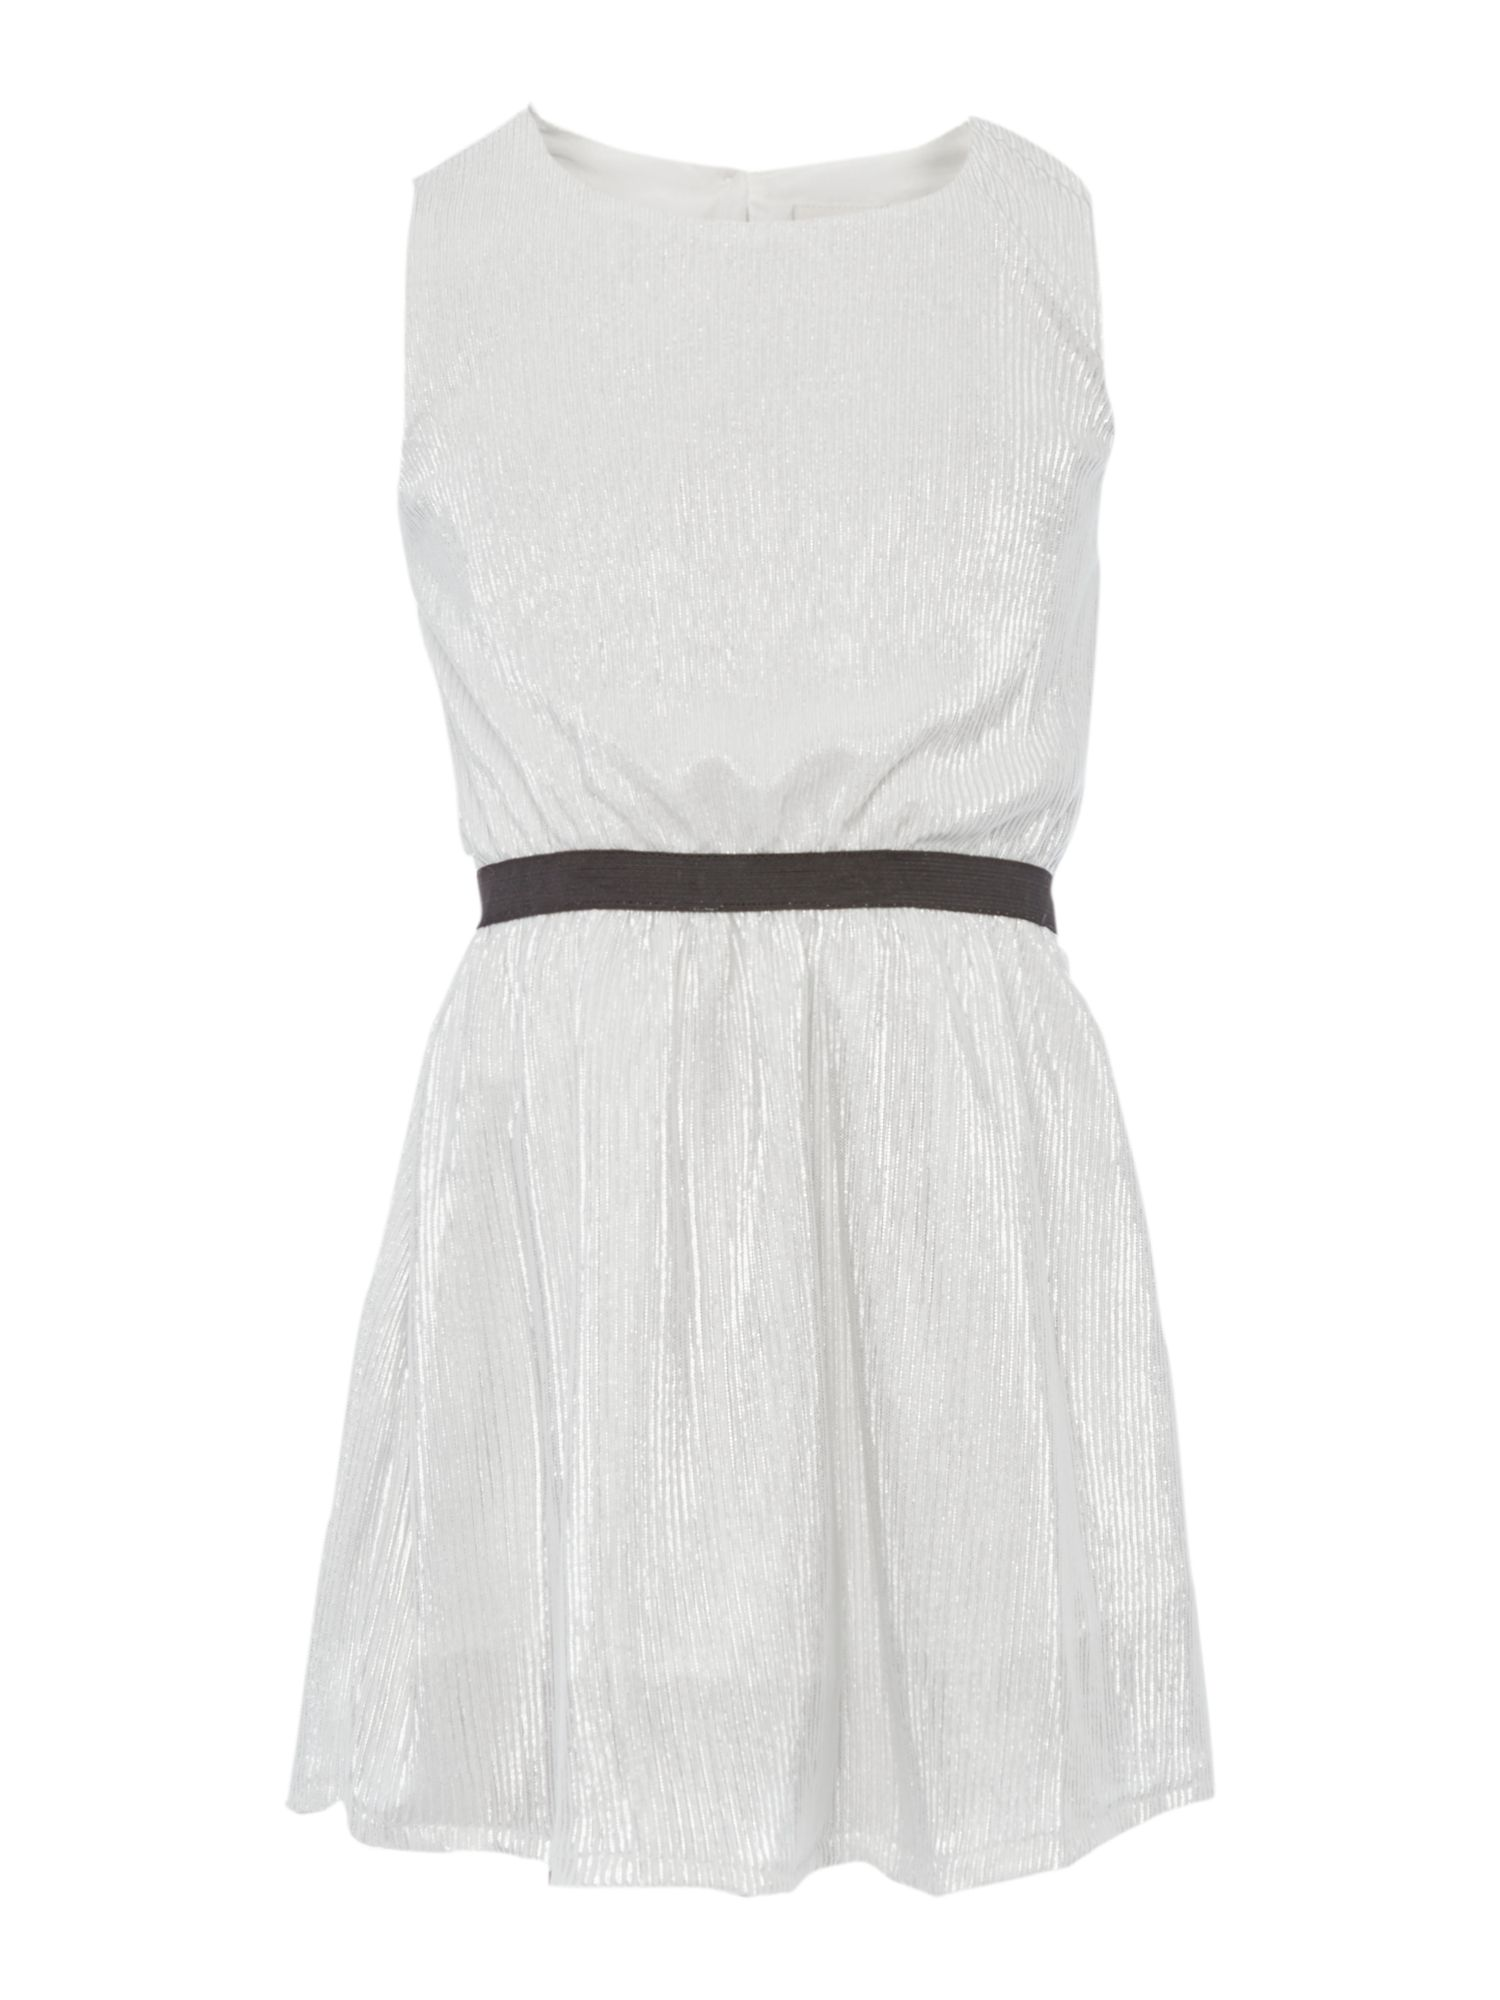 Name it name it Girls Silver Shimmer Sleeveless Dress, Silver